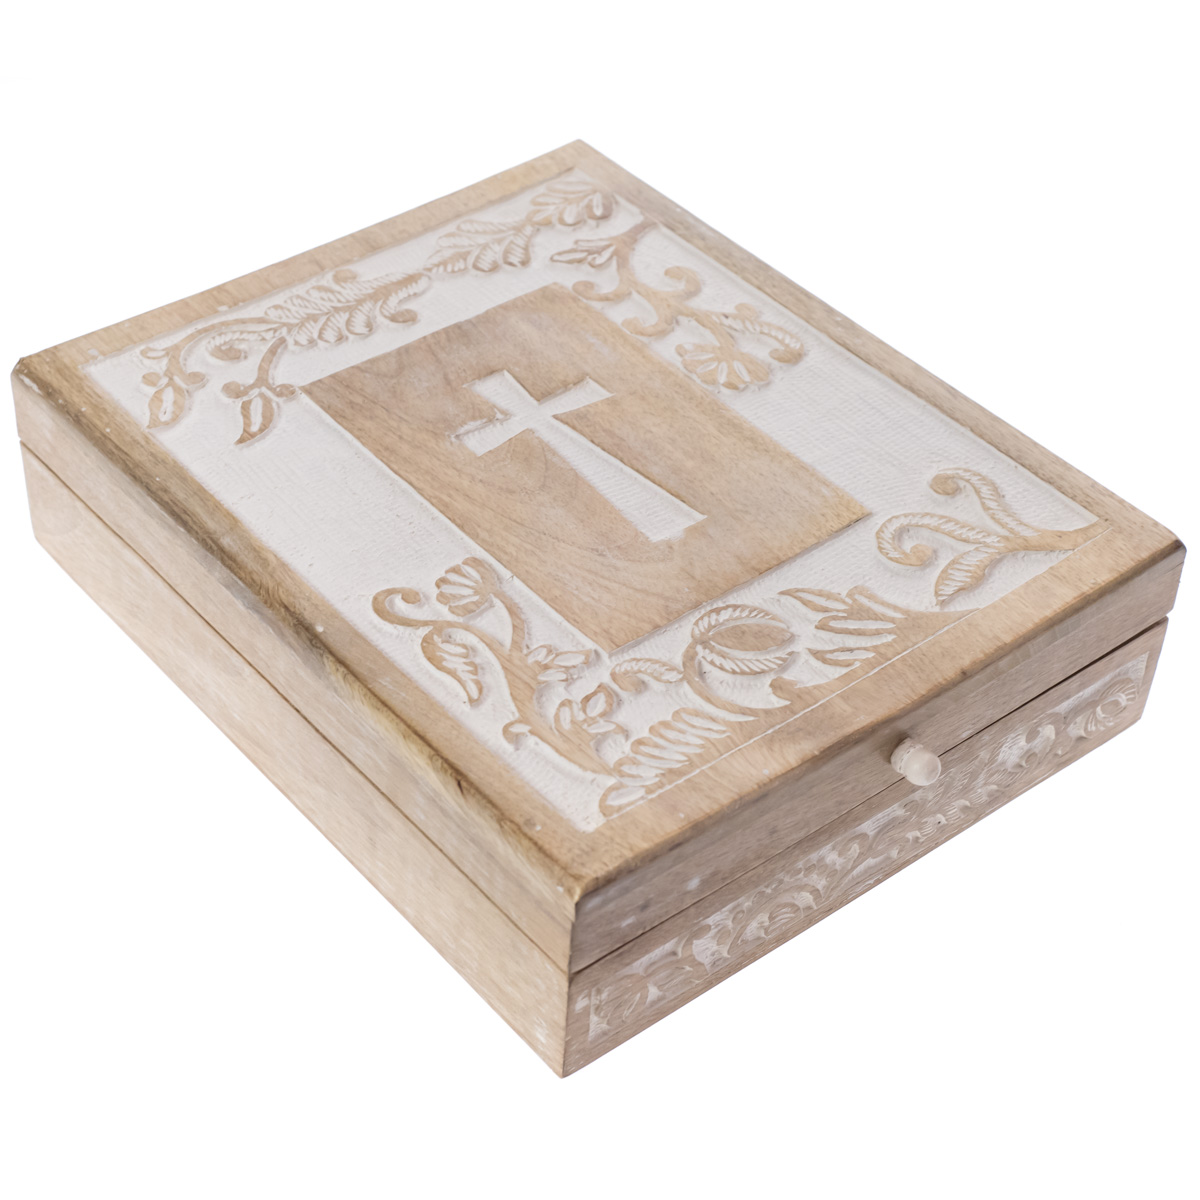 Whitewashed Wooden Bible Box